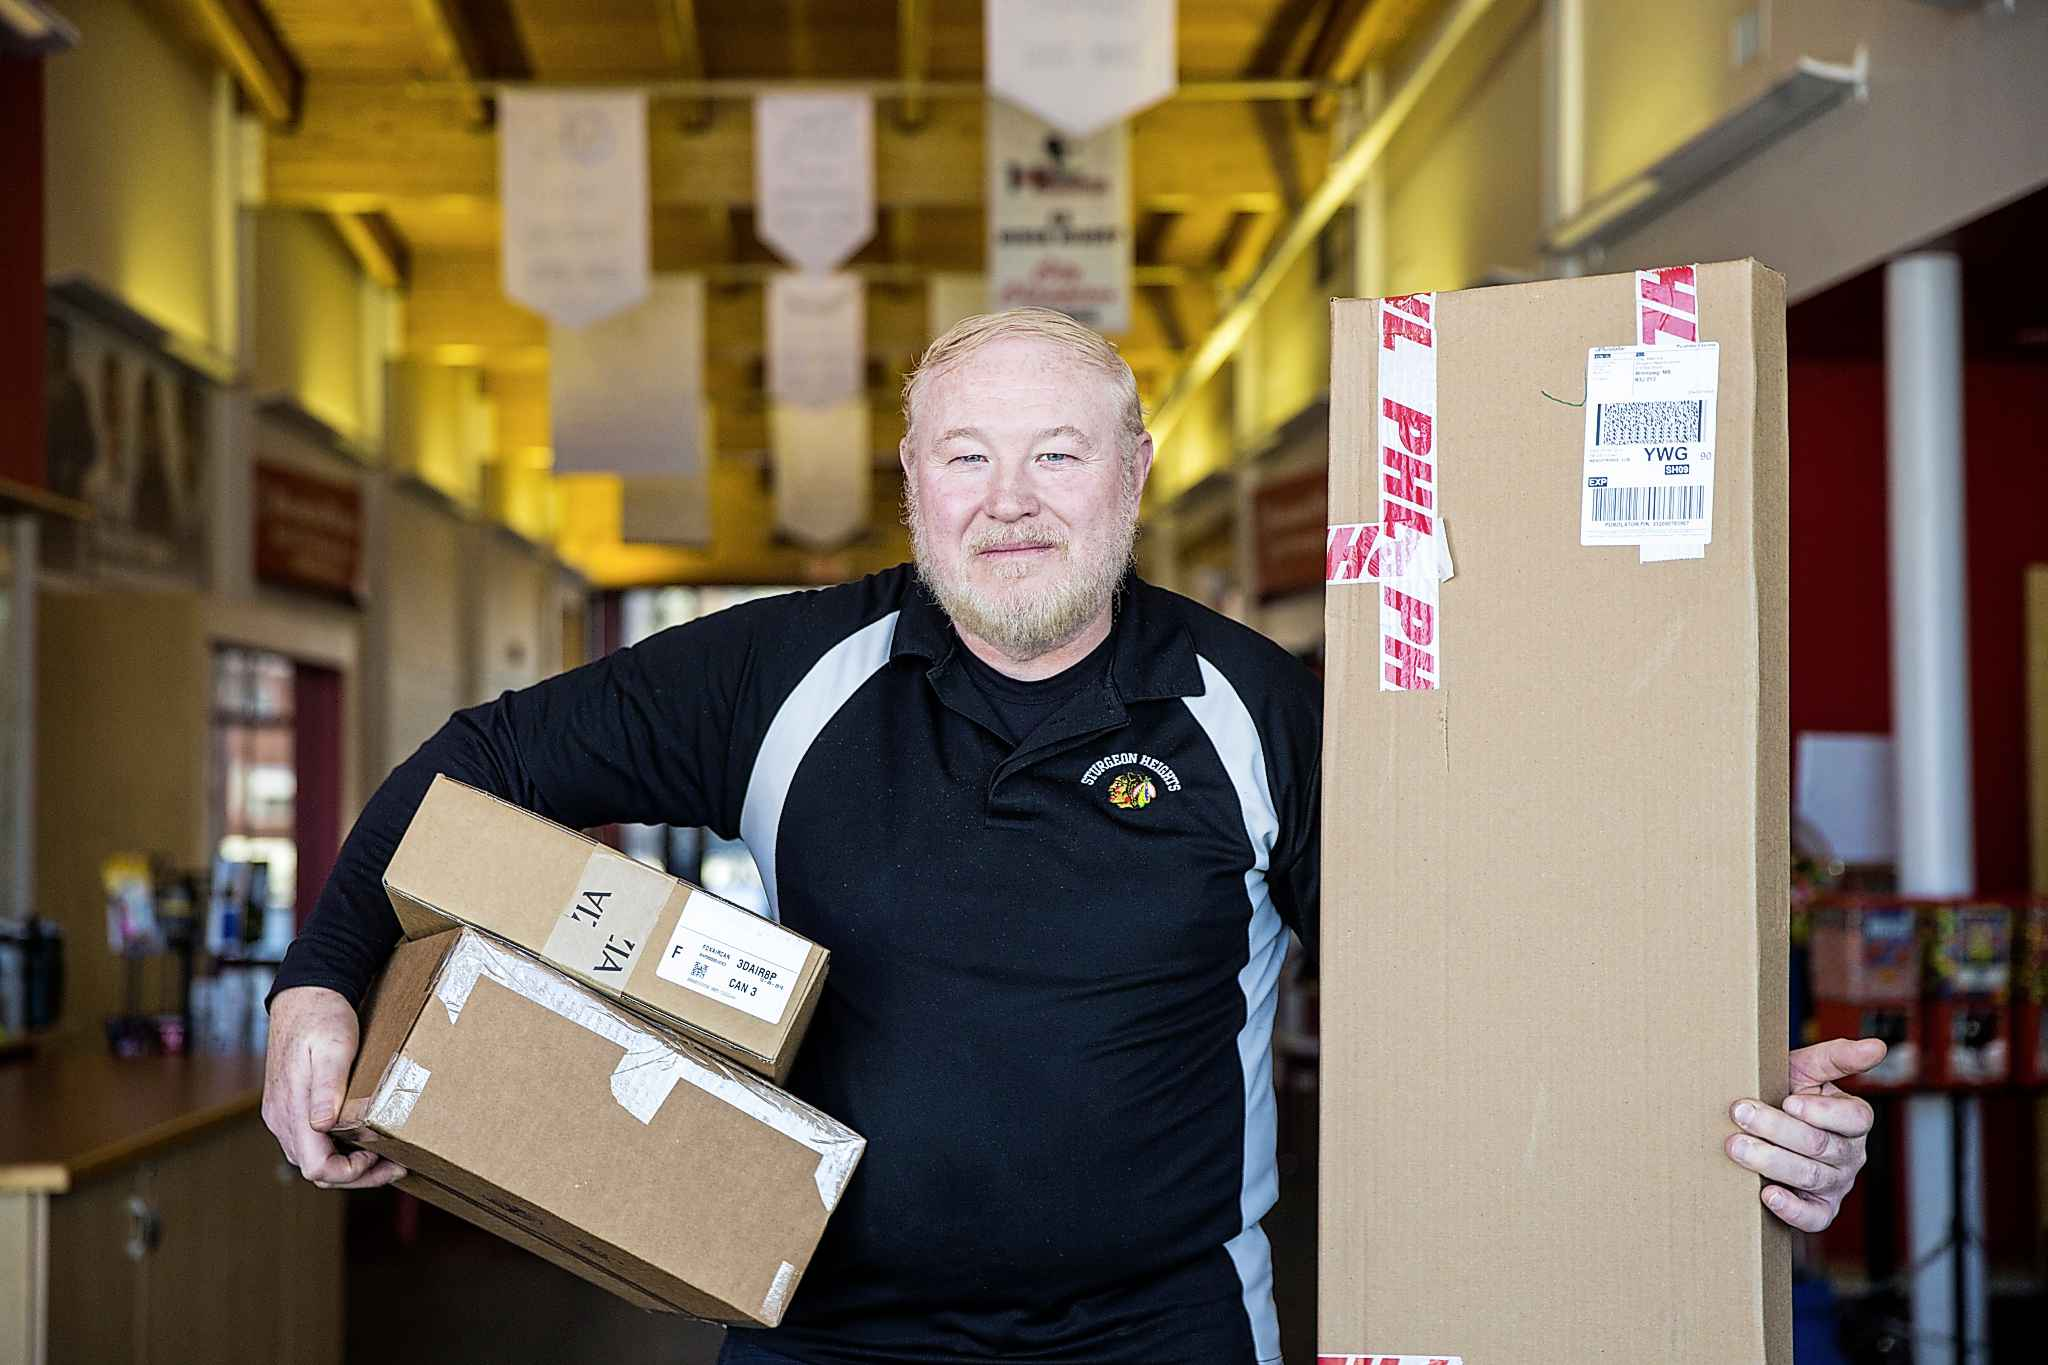 Barry Chambers, facility manager at the Sturgeon Heights Community Centre, says that the safe package delivery program has been so successful that the centre might offer it all the time. (Mikaela MacKenzie / Winnipeg Free Press)